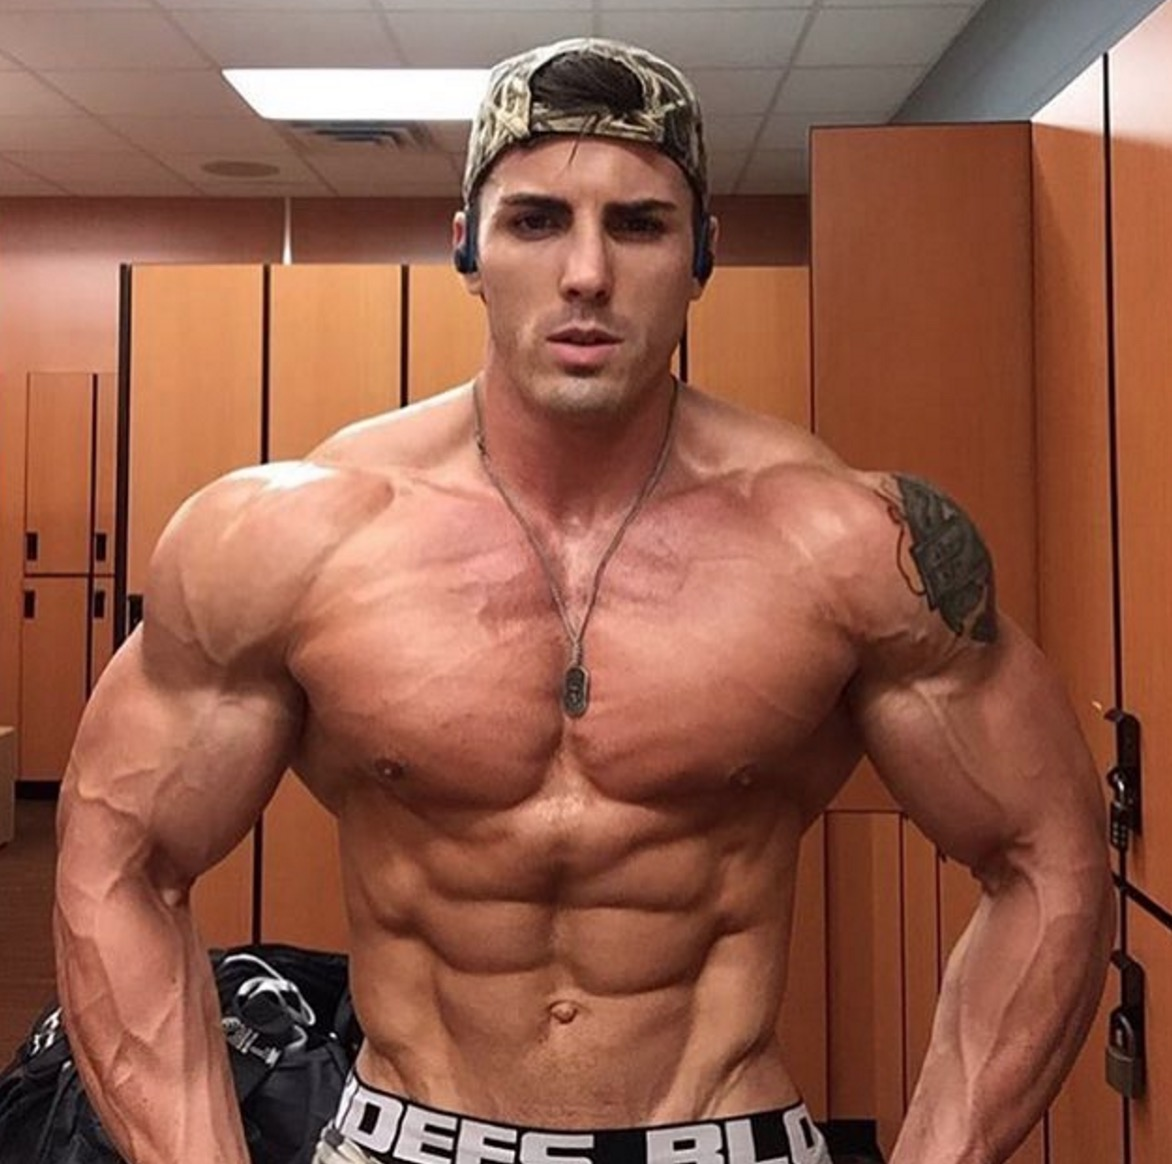 informative speech on anabolic sports Where to get a modest proposal analysis essay a speech jammer david's e-portfolio home and baseball informative speech video persuasive speech about the effects of steroids on.